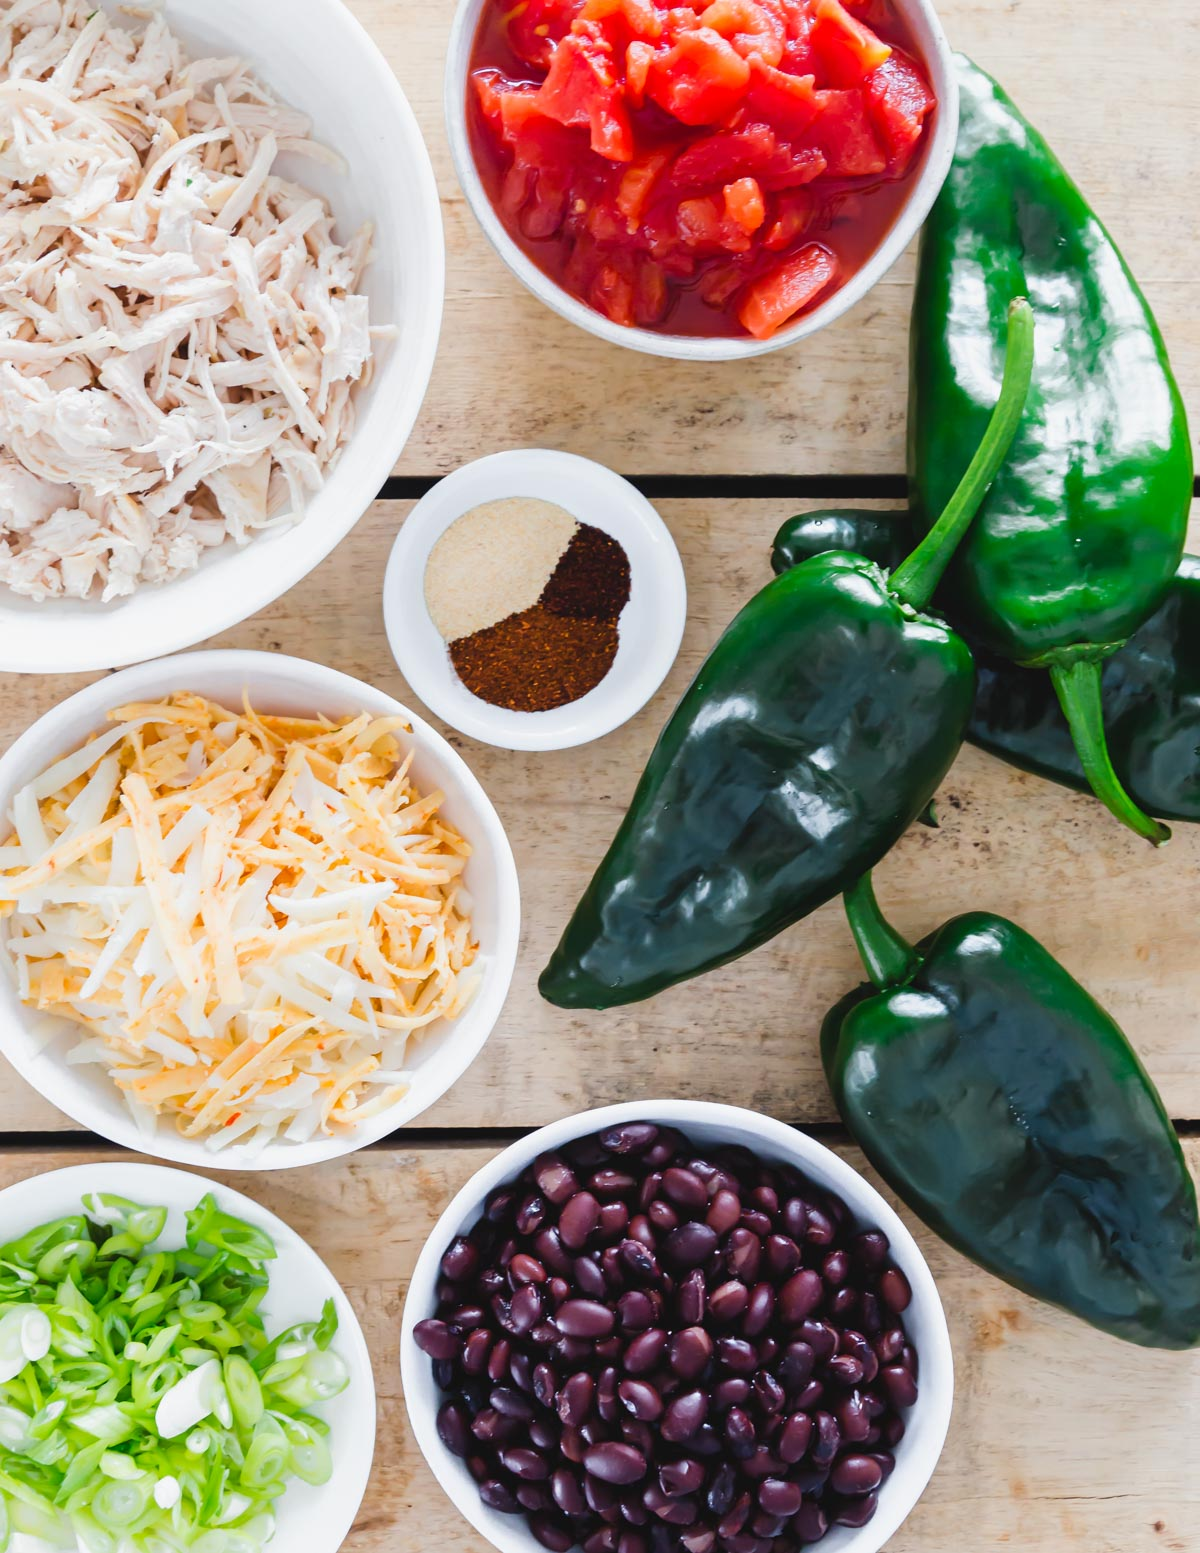 Ingredients to make stuffed poblano peppers including shredded cooked chicken, cheese, black beans, tomatoes and spices.